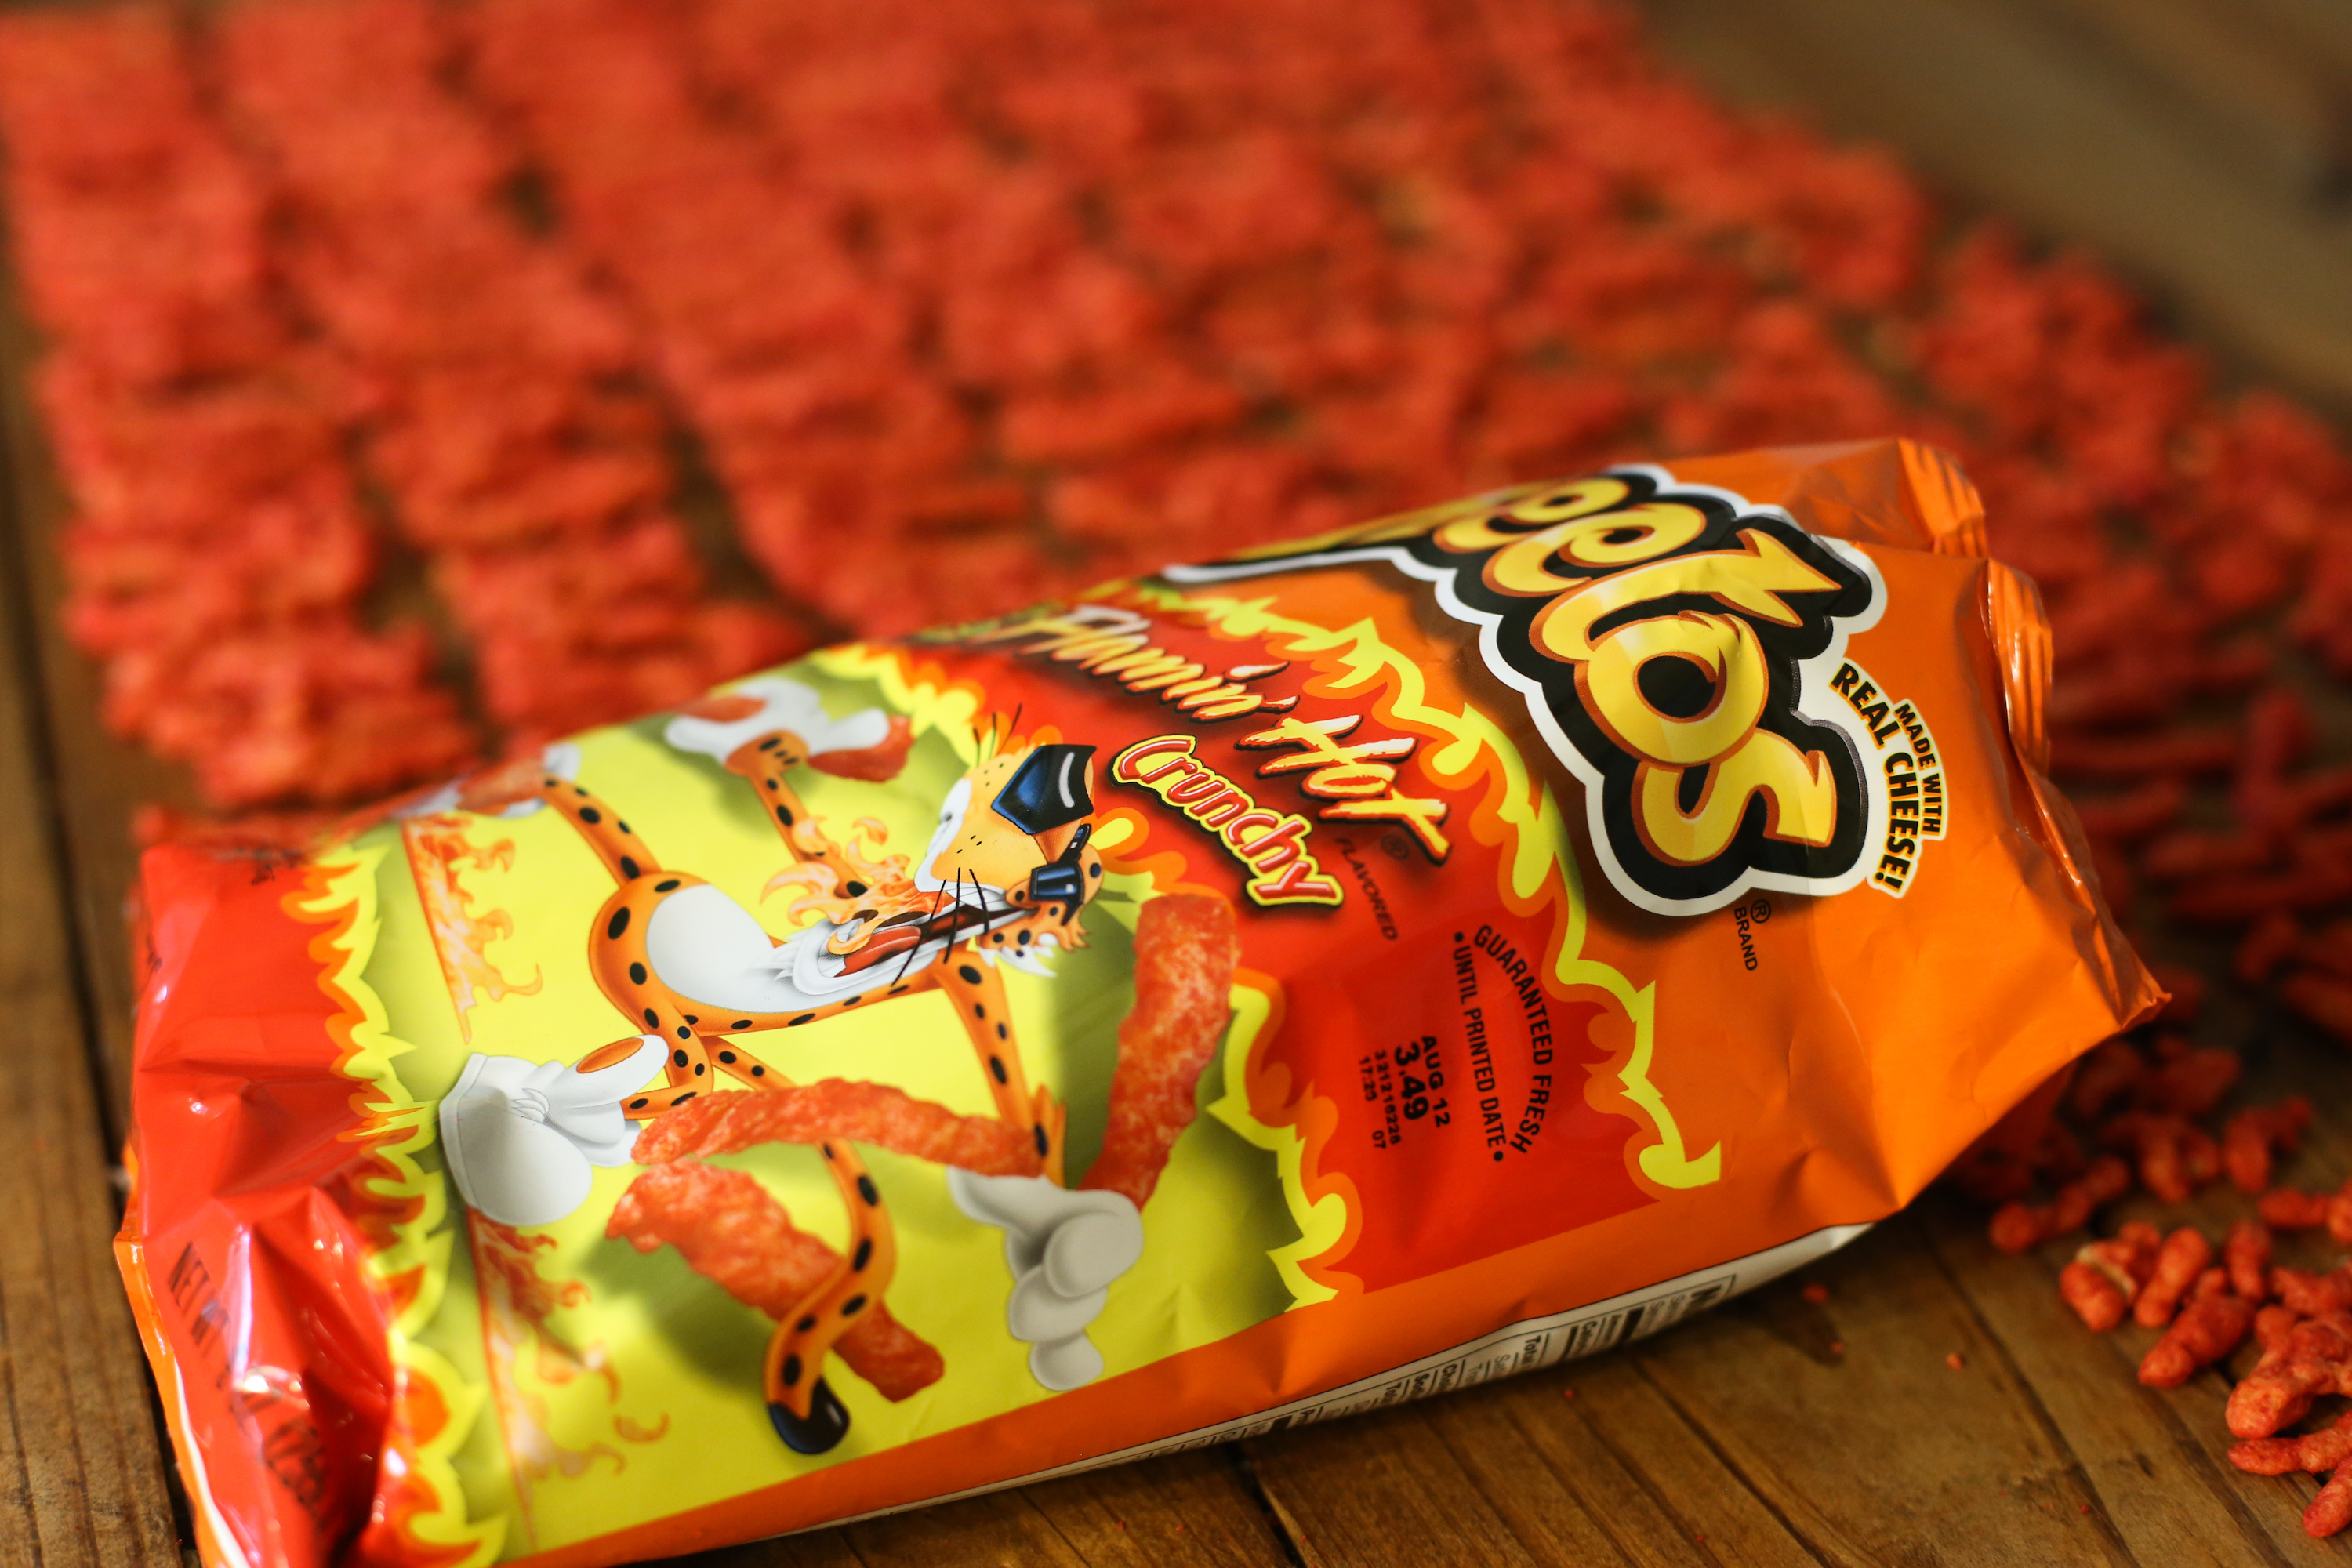 Cheetos Wallpapers Hd